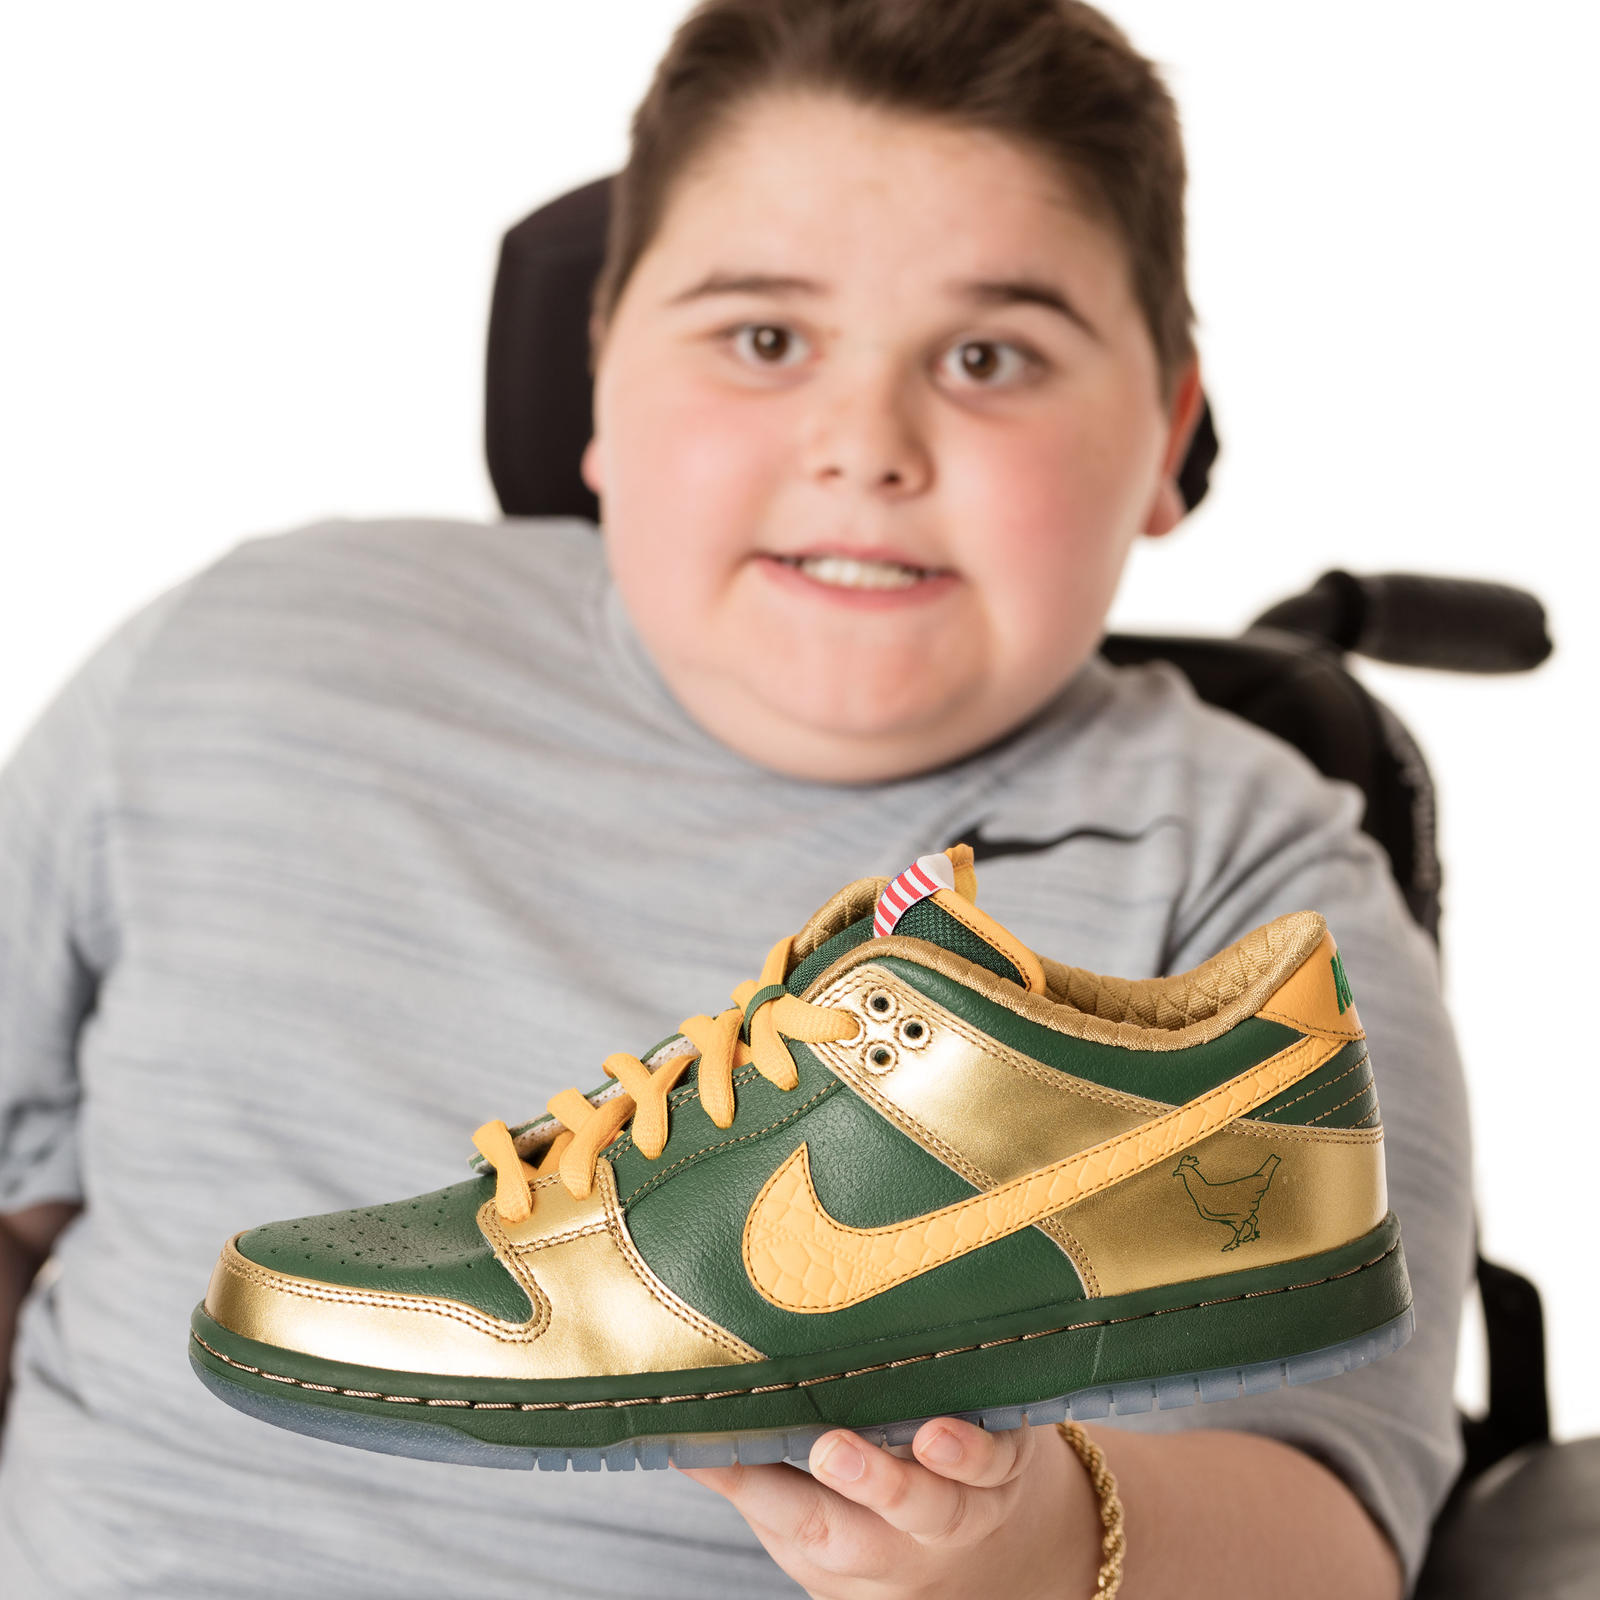 Introducing the Doernbecher Freestyle 2018 Collection 8